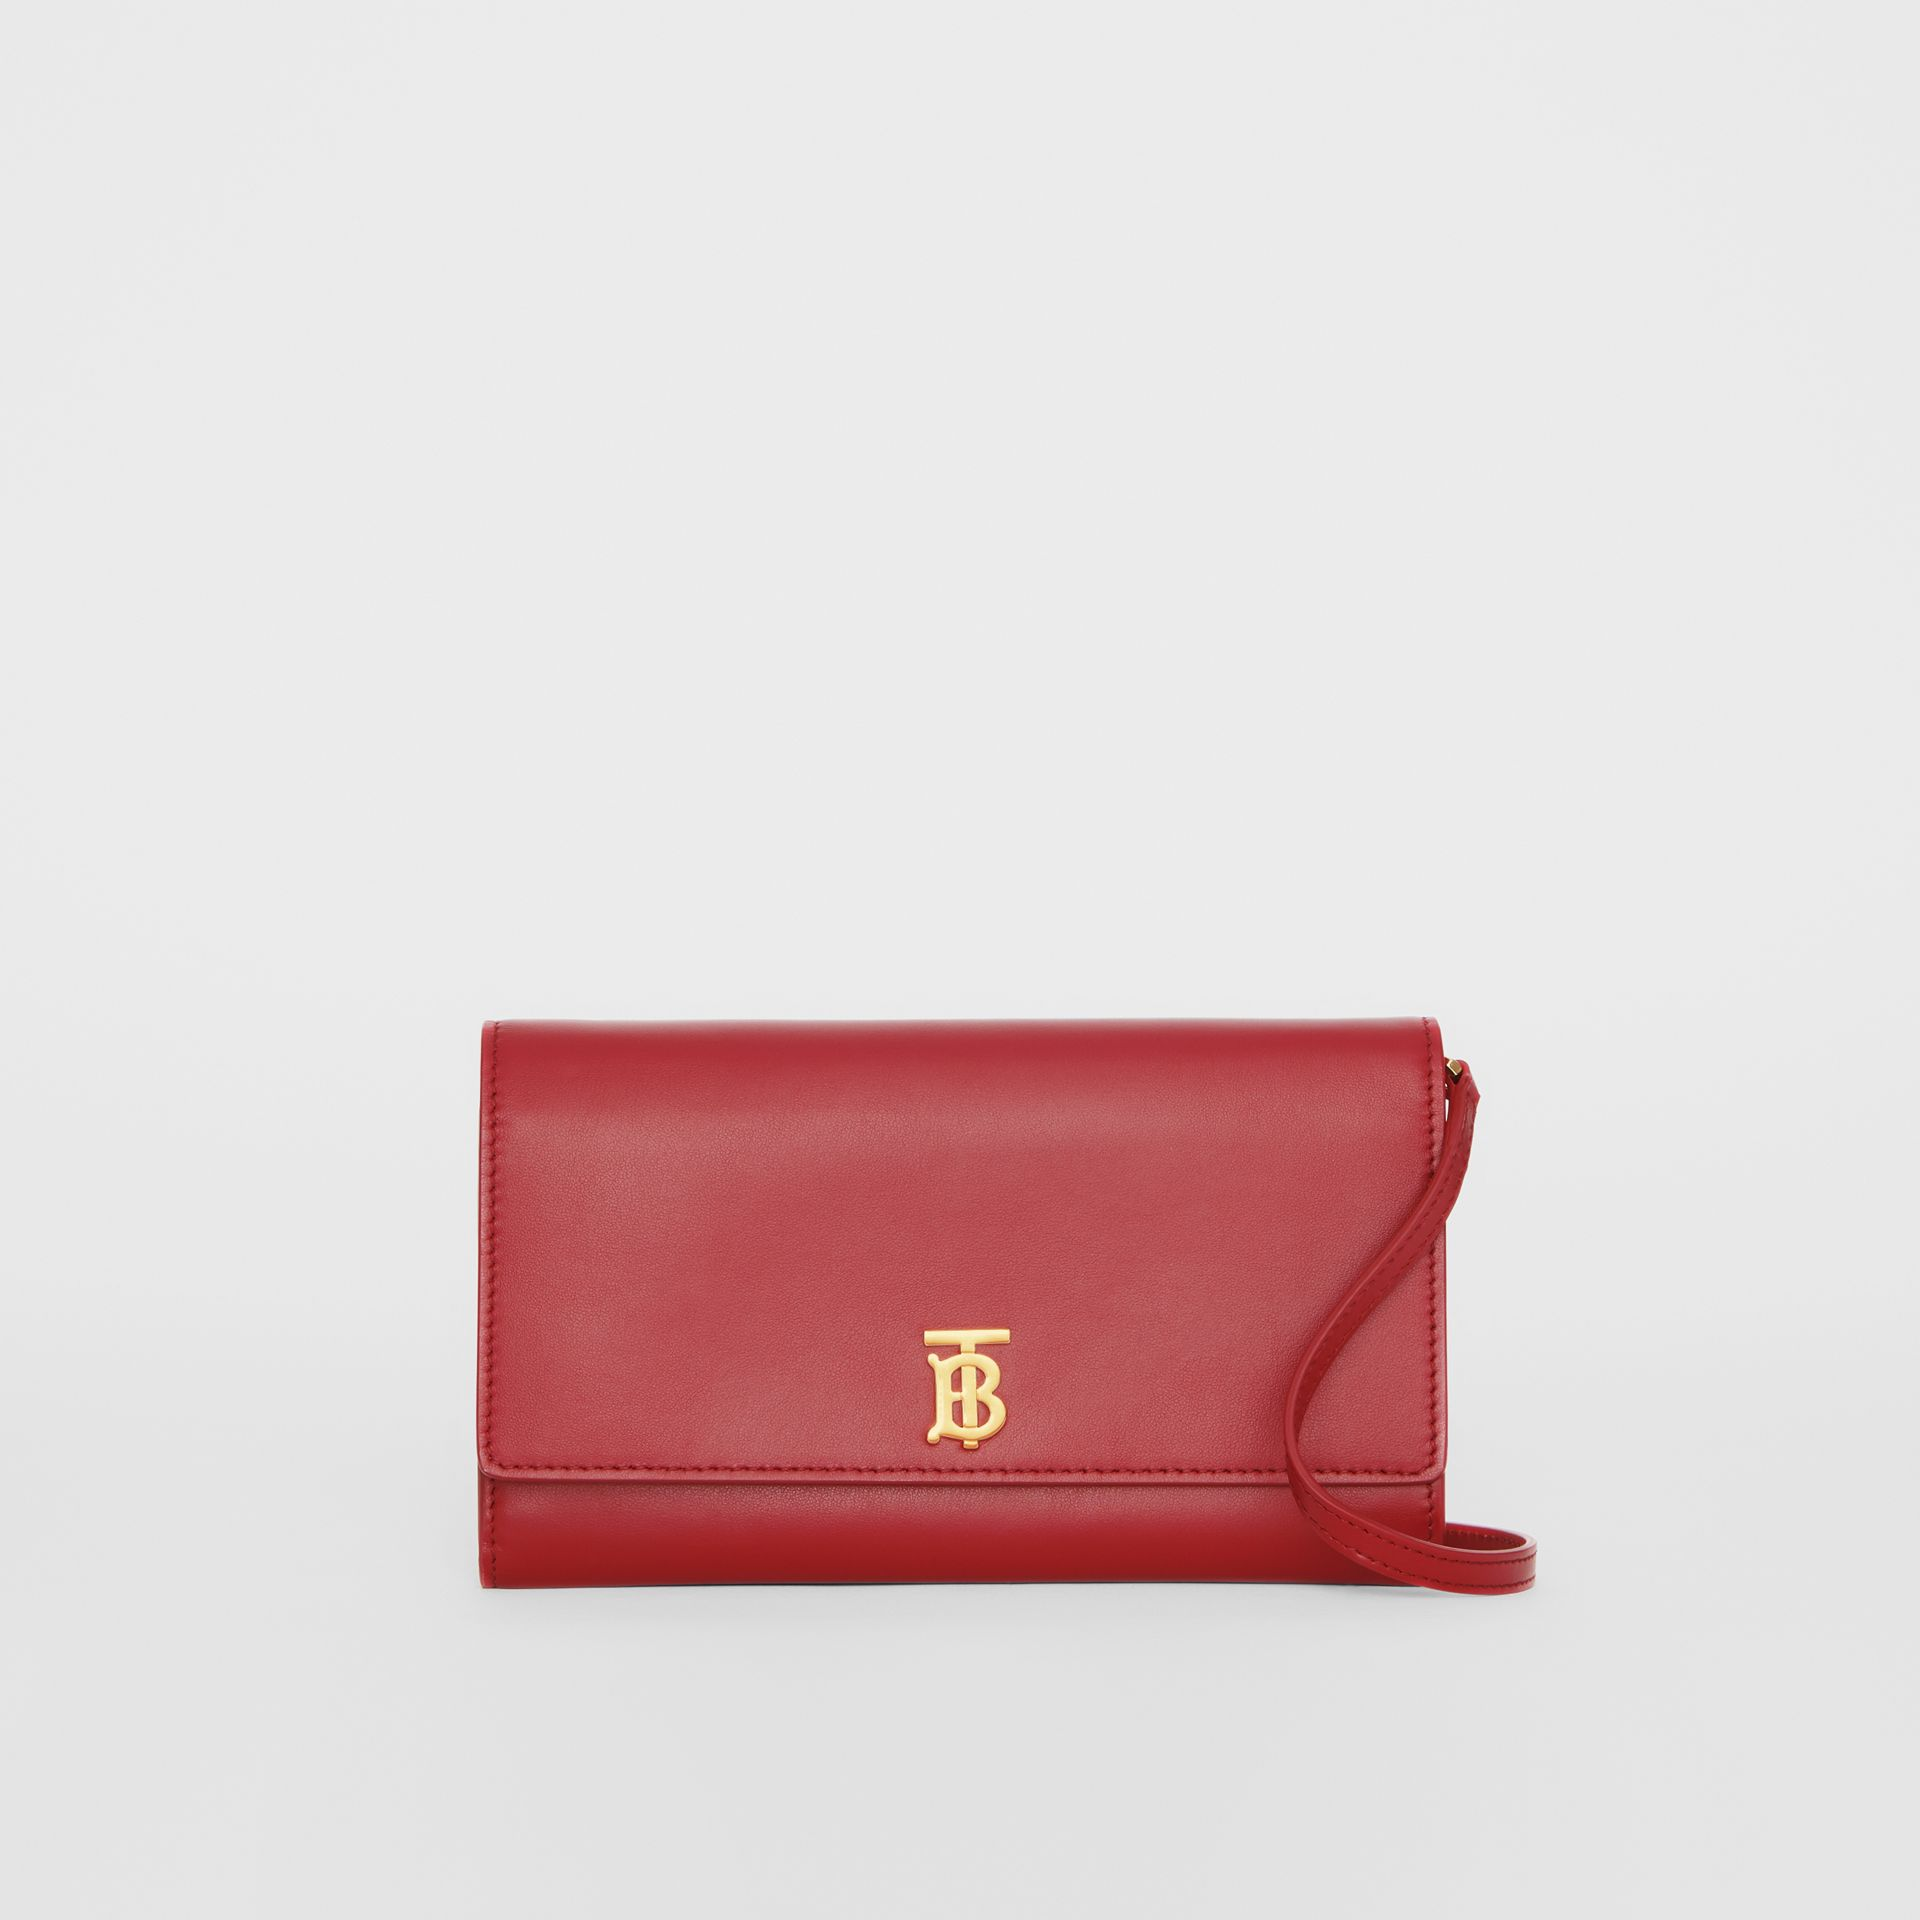 Portefeuille en cuir Monogram avec sangle amovible (Carmin) - Femme | Burberry Canada - photo de la galerie 0